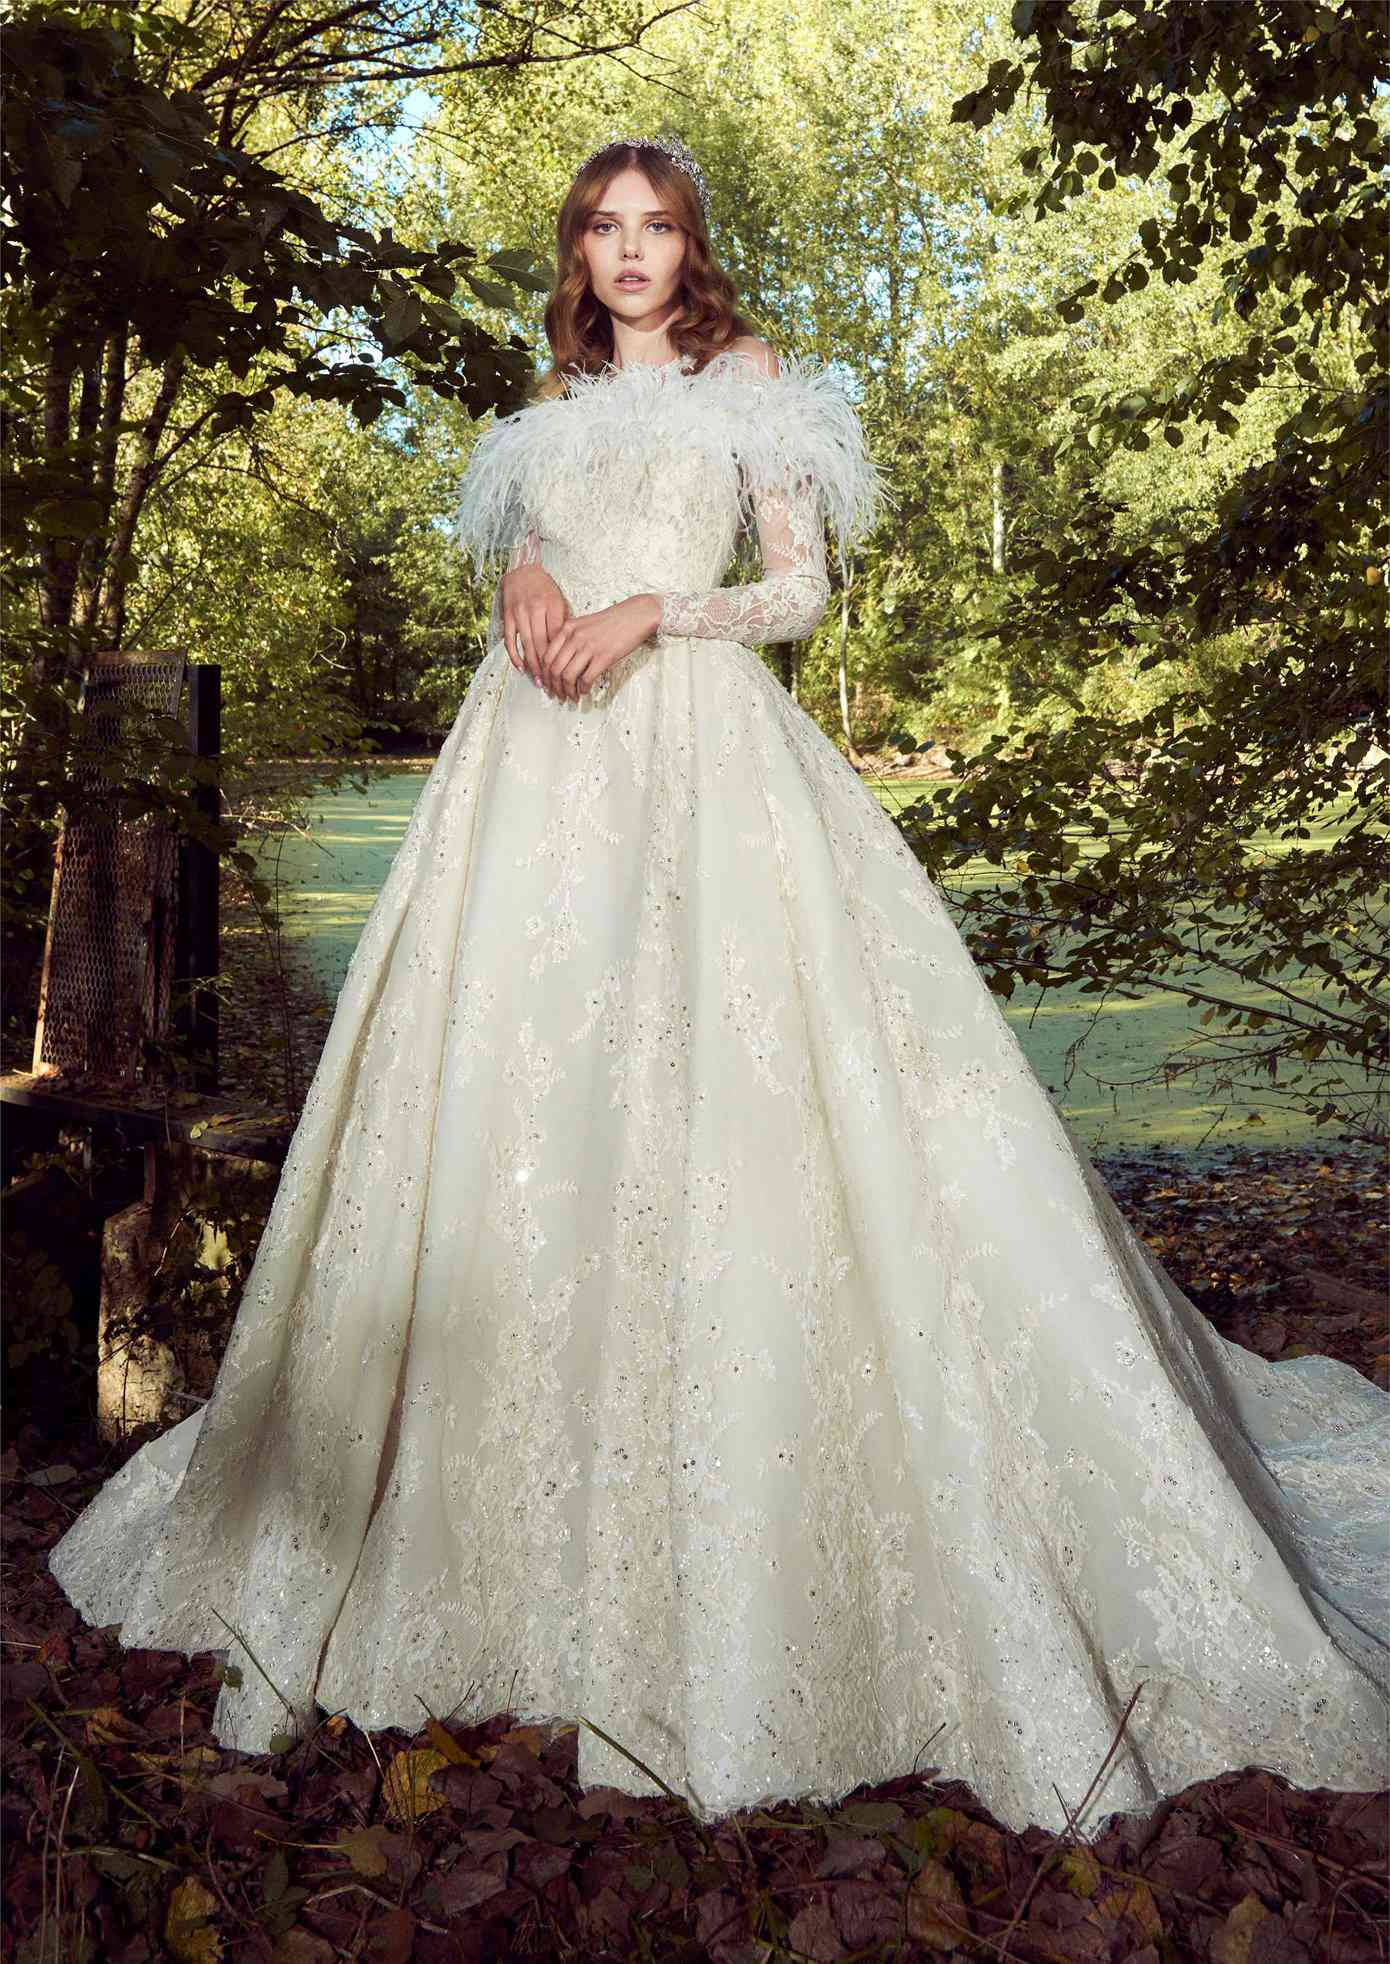 Model in an off-white high-neck sleeveless ballgown with allover sequined floral lace embroidery with a lace long-sleeve and feather pullover